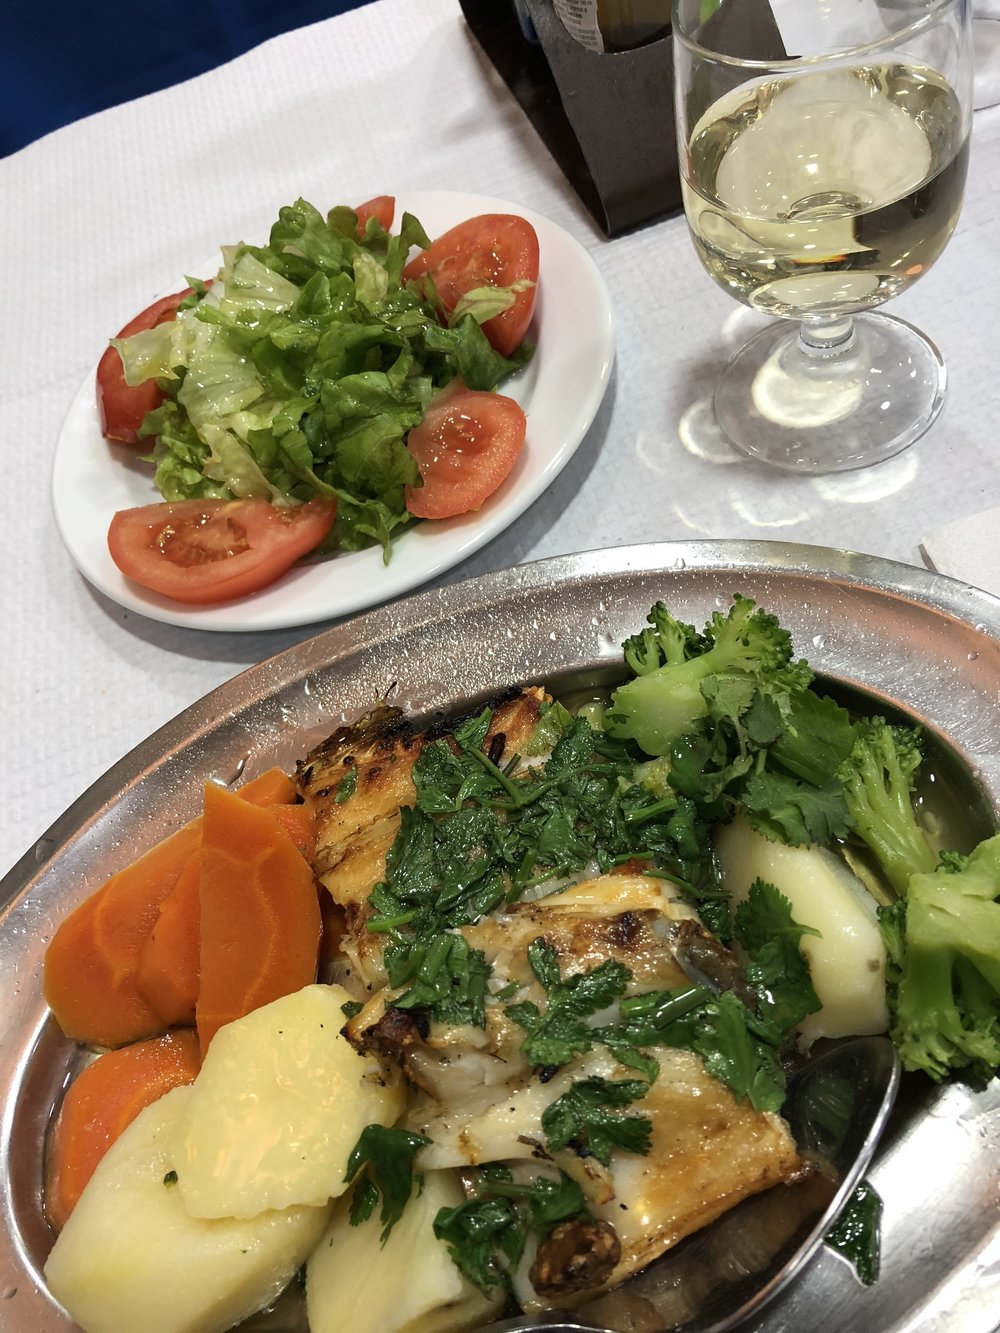 Lunch at Paco Real of house cod, veggies, salad & white wine.